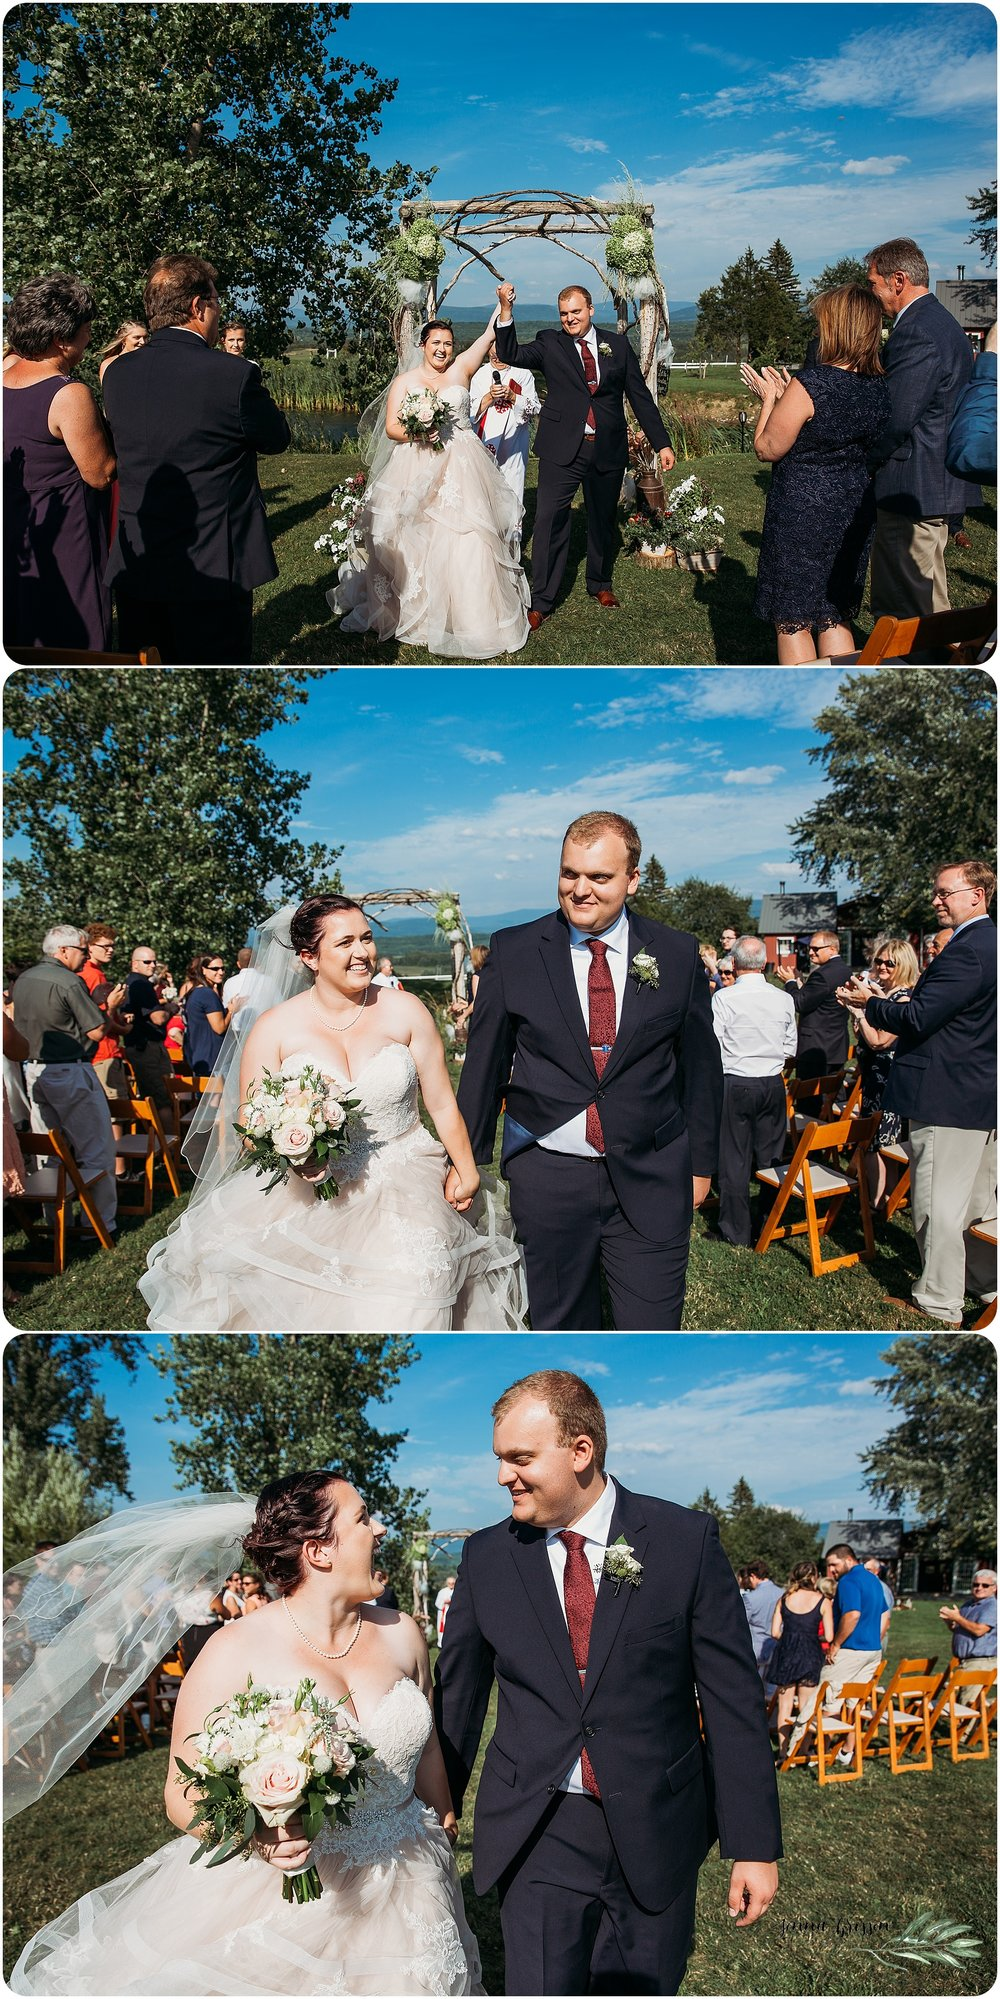 Candid Wedding Photography Vermont